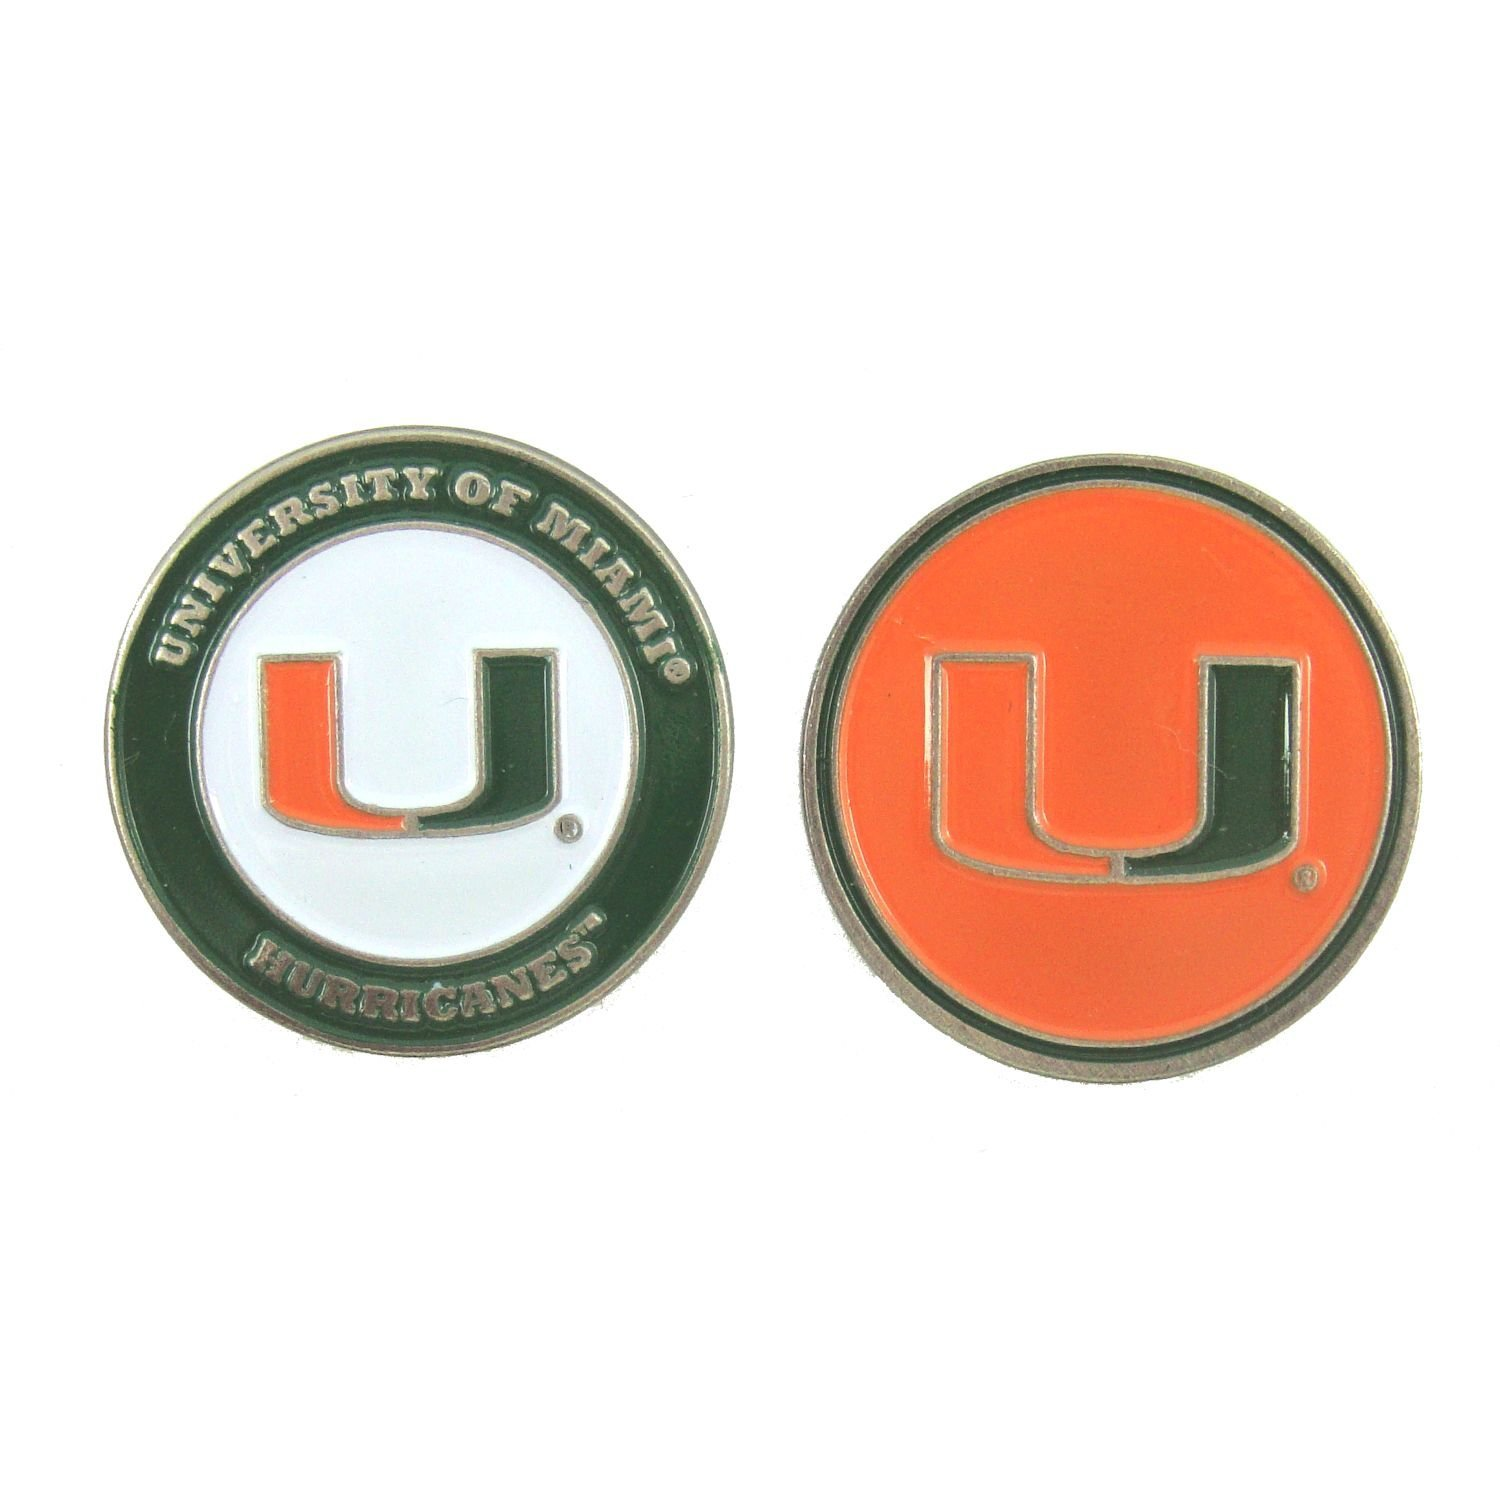 Miami Hurricanes NCAA Double-Sided Golf Ball Marker, 1 Team Logo Double Sided Ball Marker By Waggle Pro Shop,USA